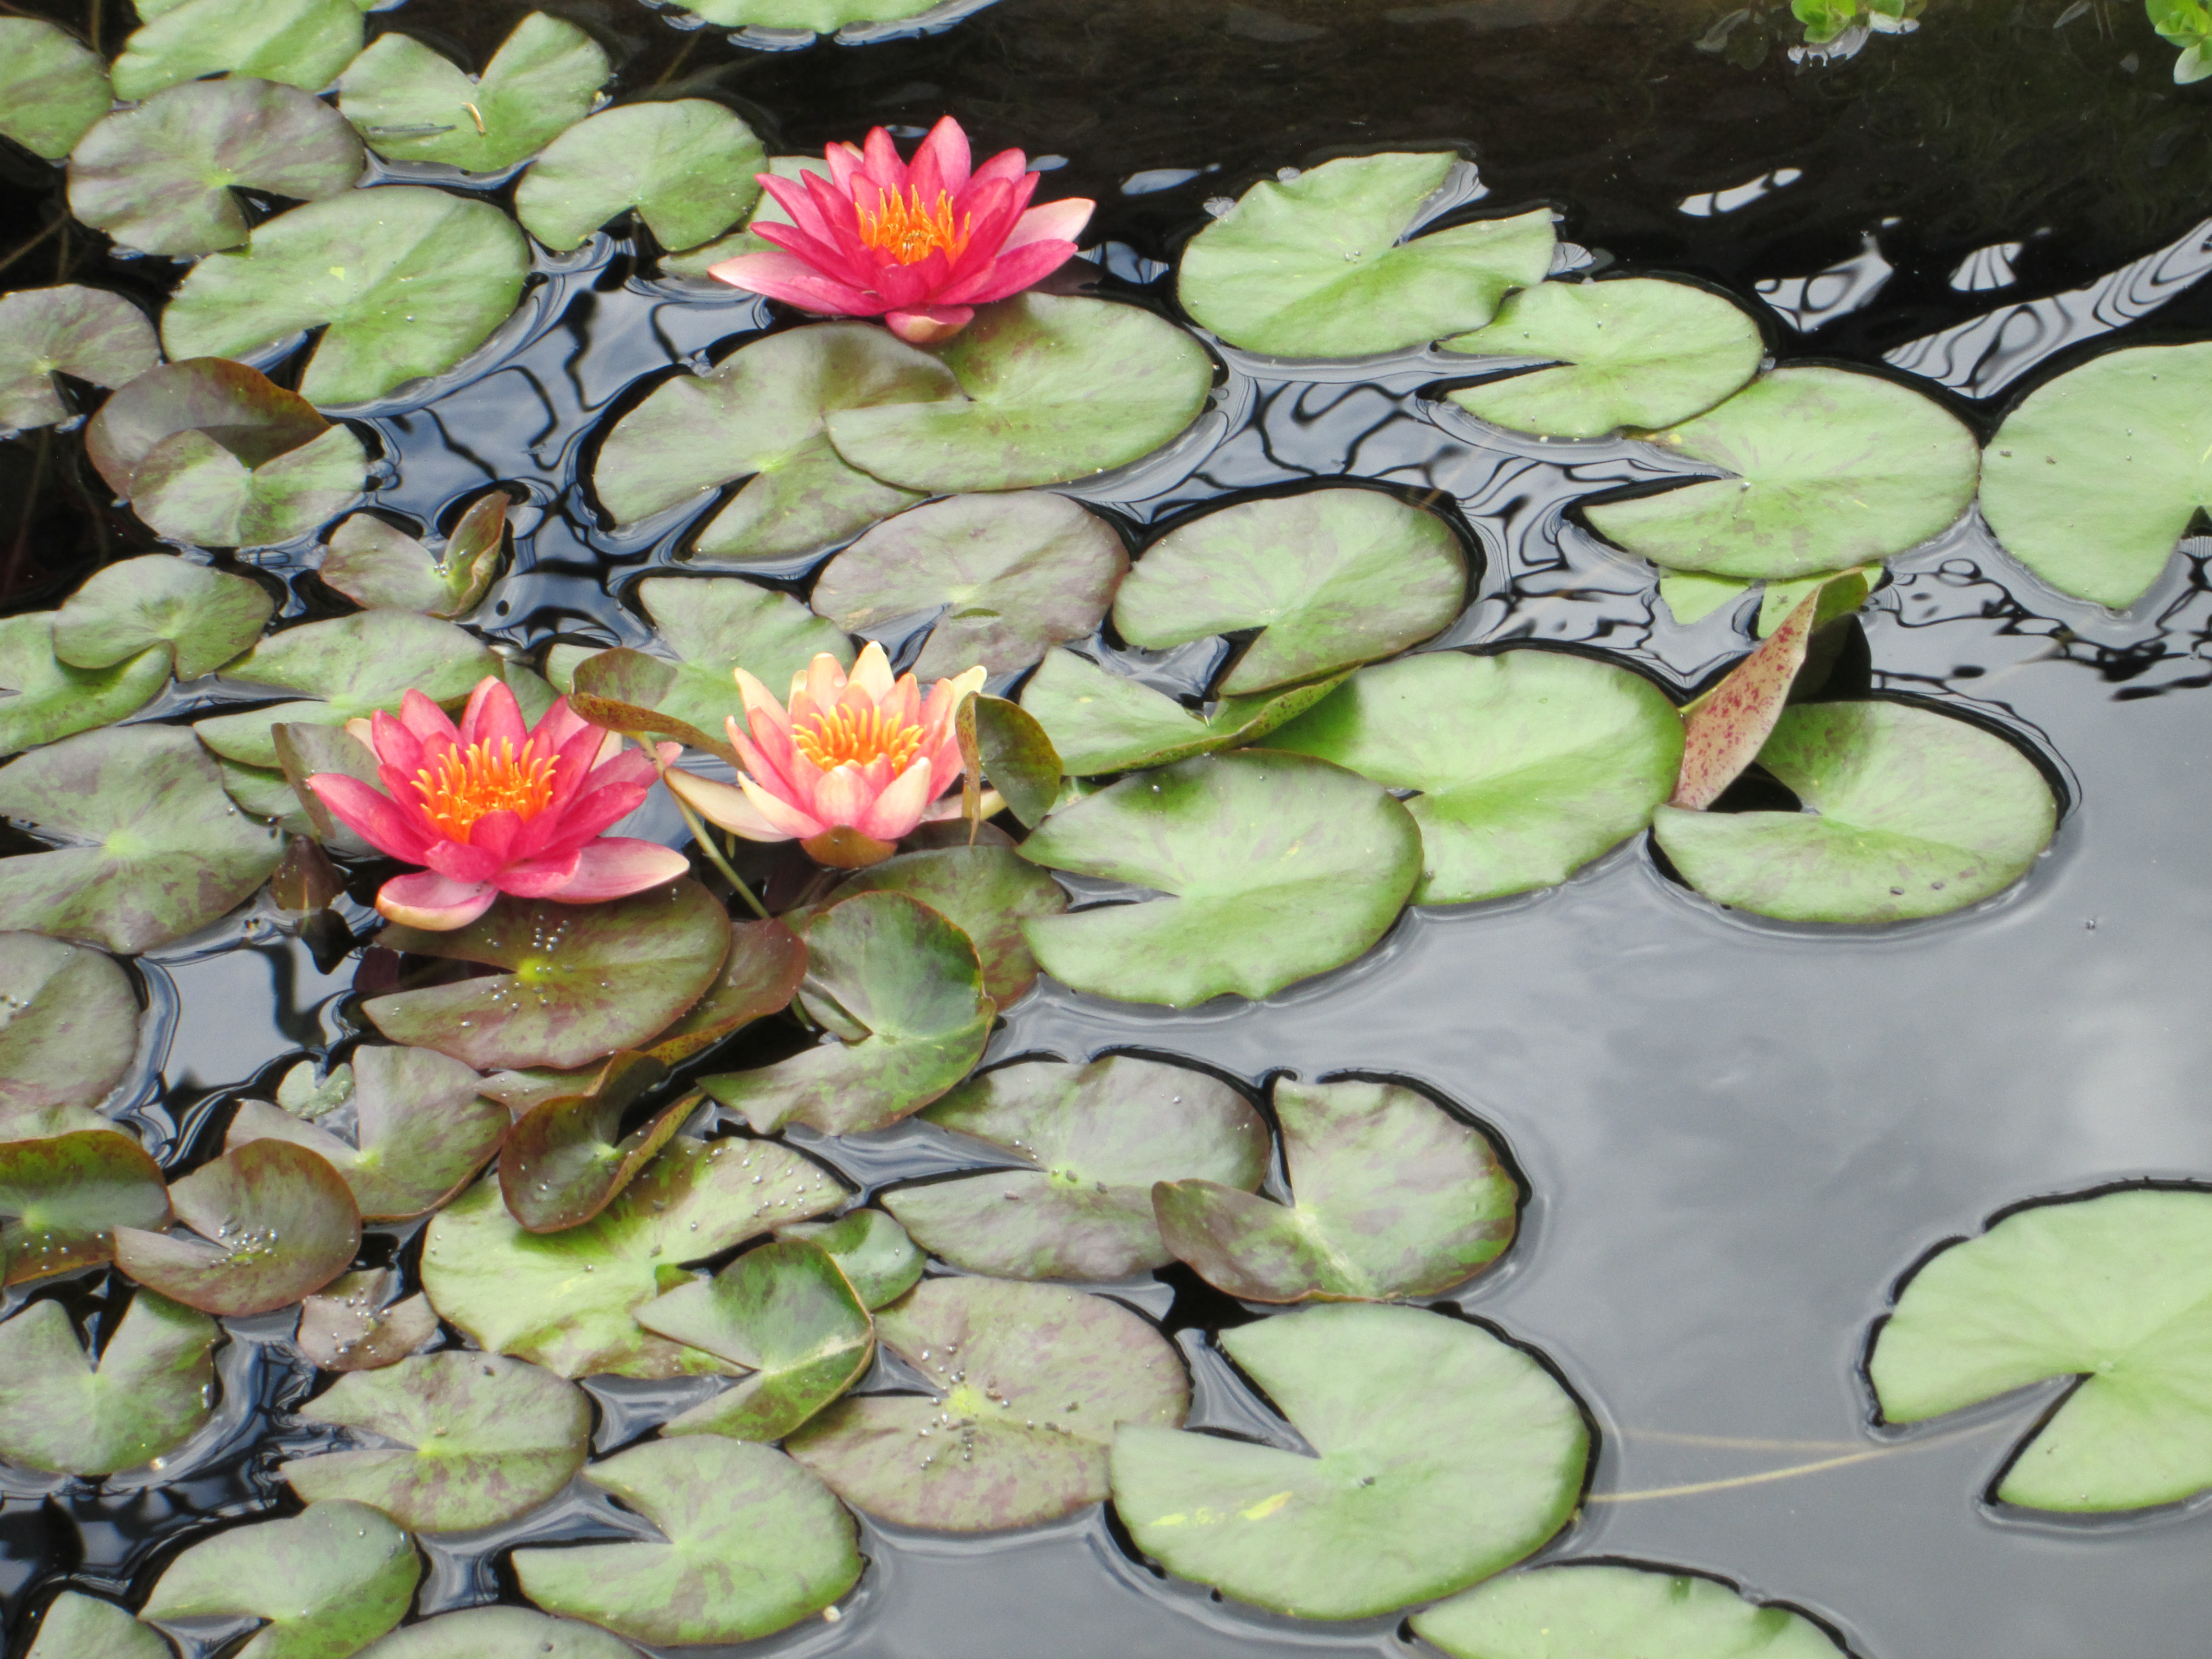 Id like to float a baby on one of these giant lily pads miriams img0915 izmirmasajfo